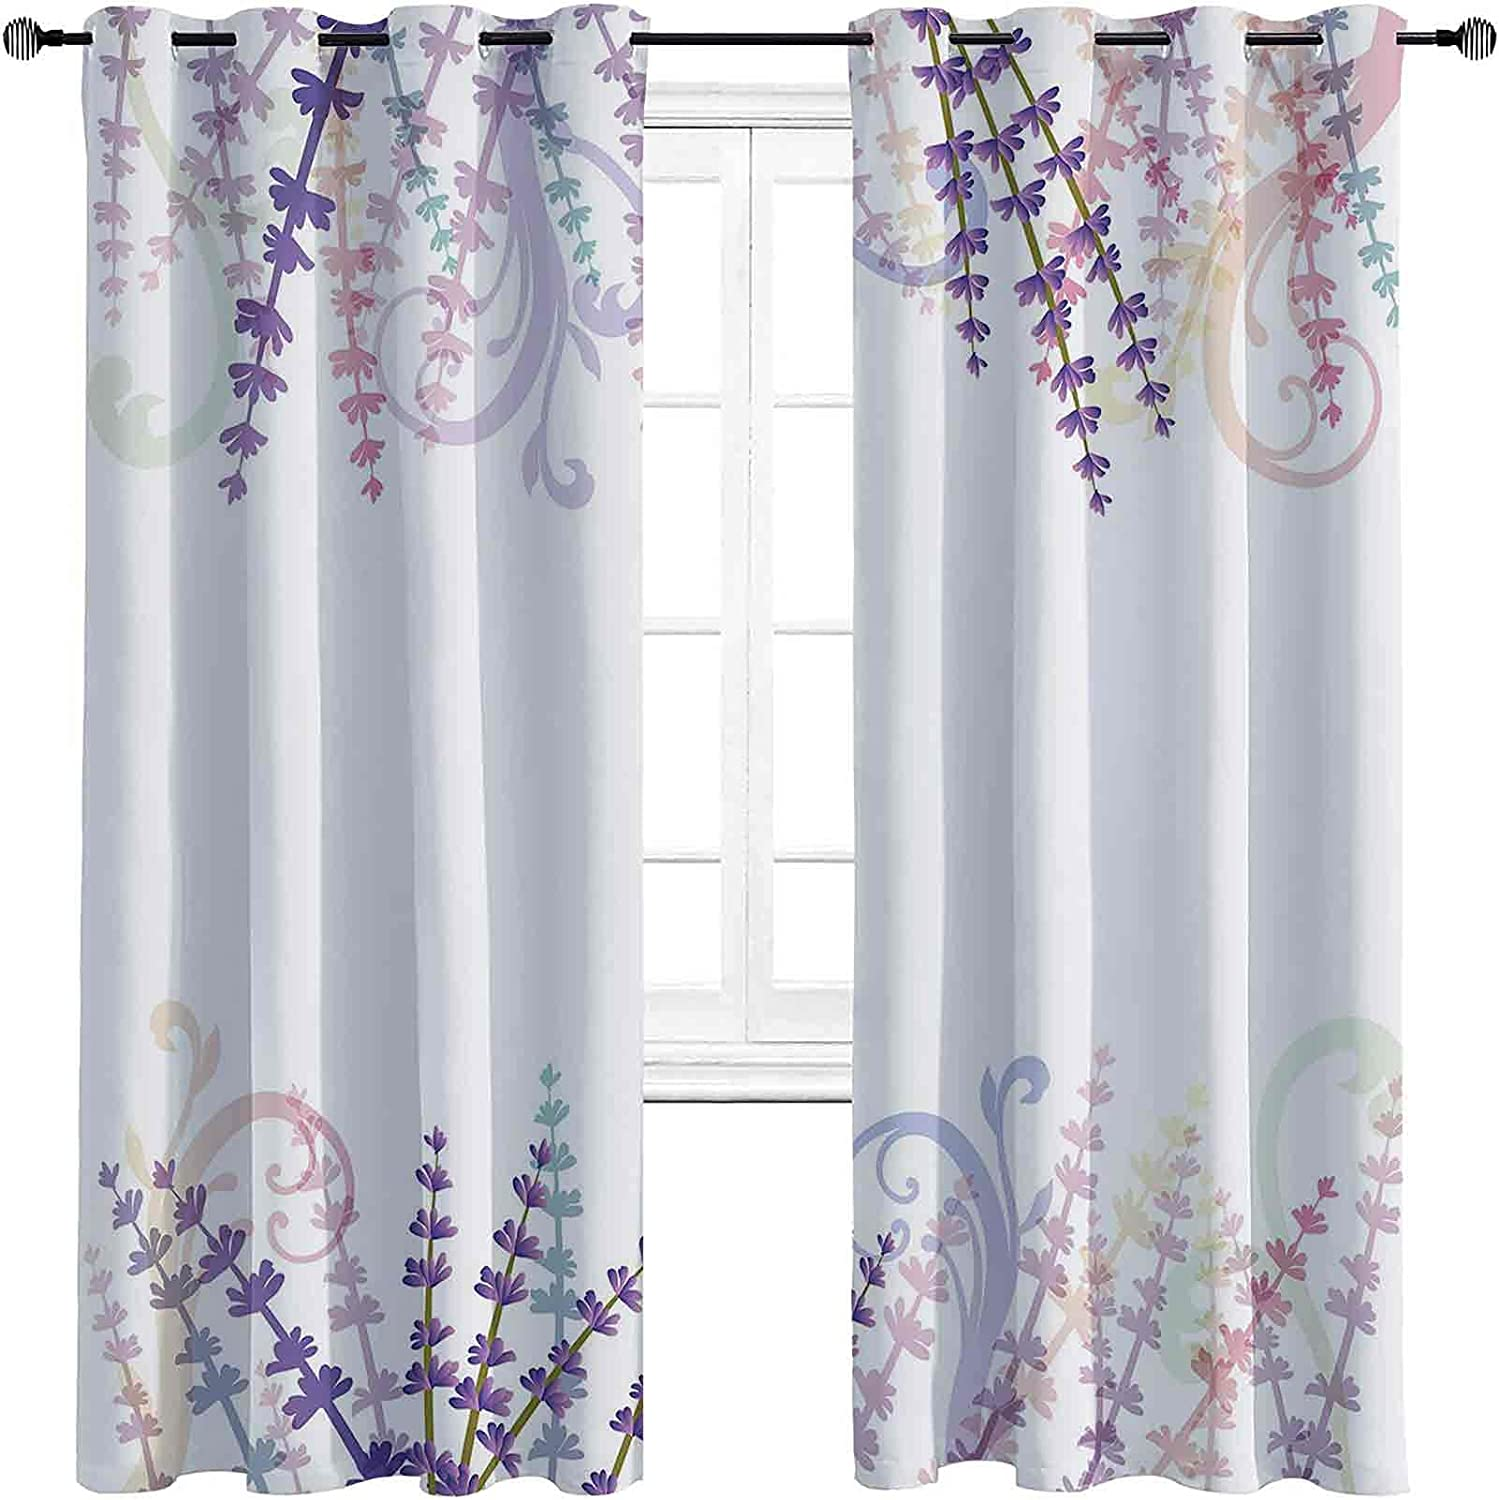 Beauty products overseas Lavender Blackout Curtains - Gasket Abstract Insulation Meadow